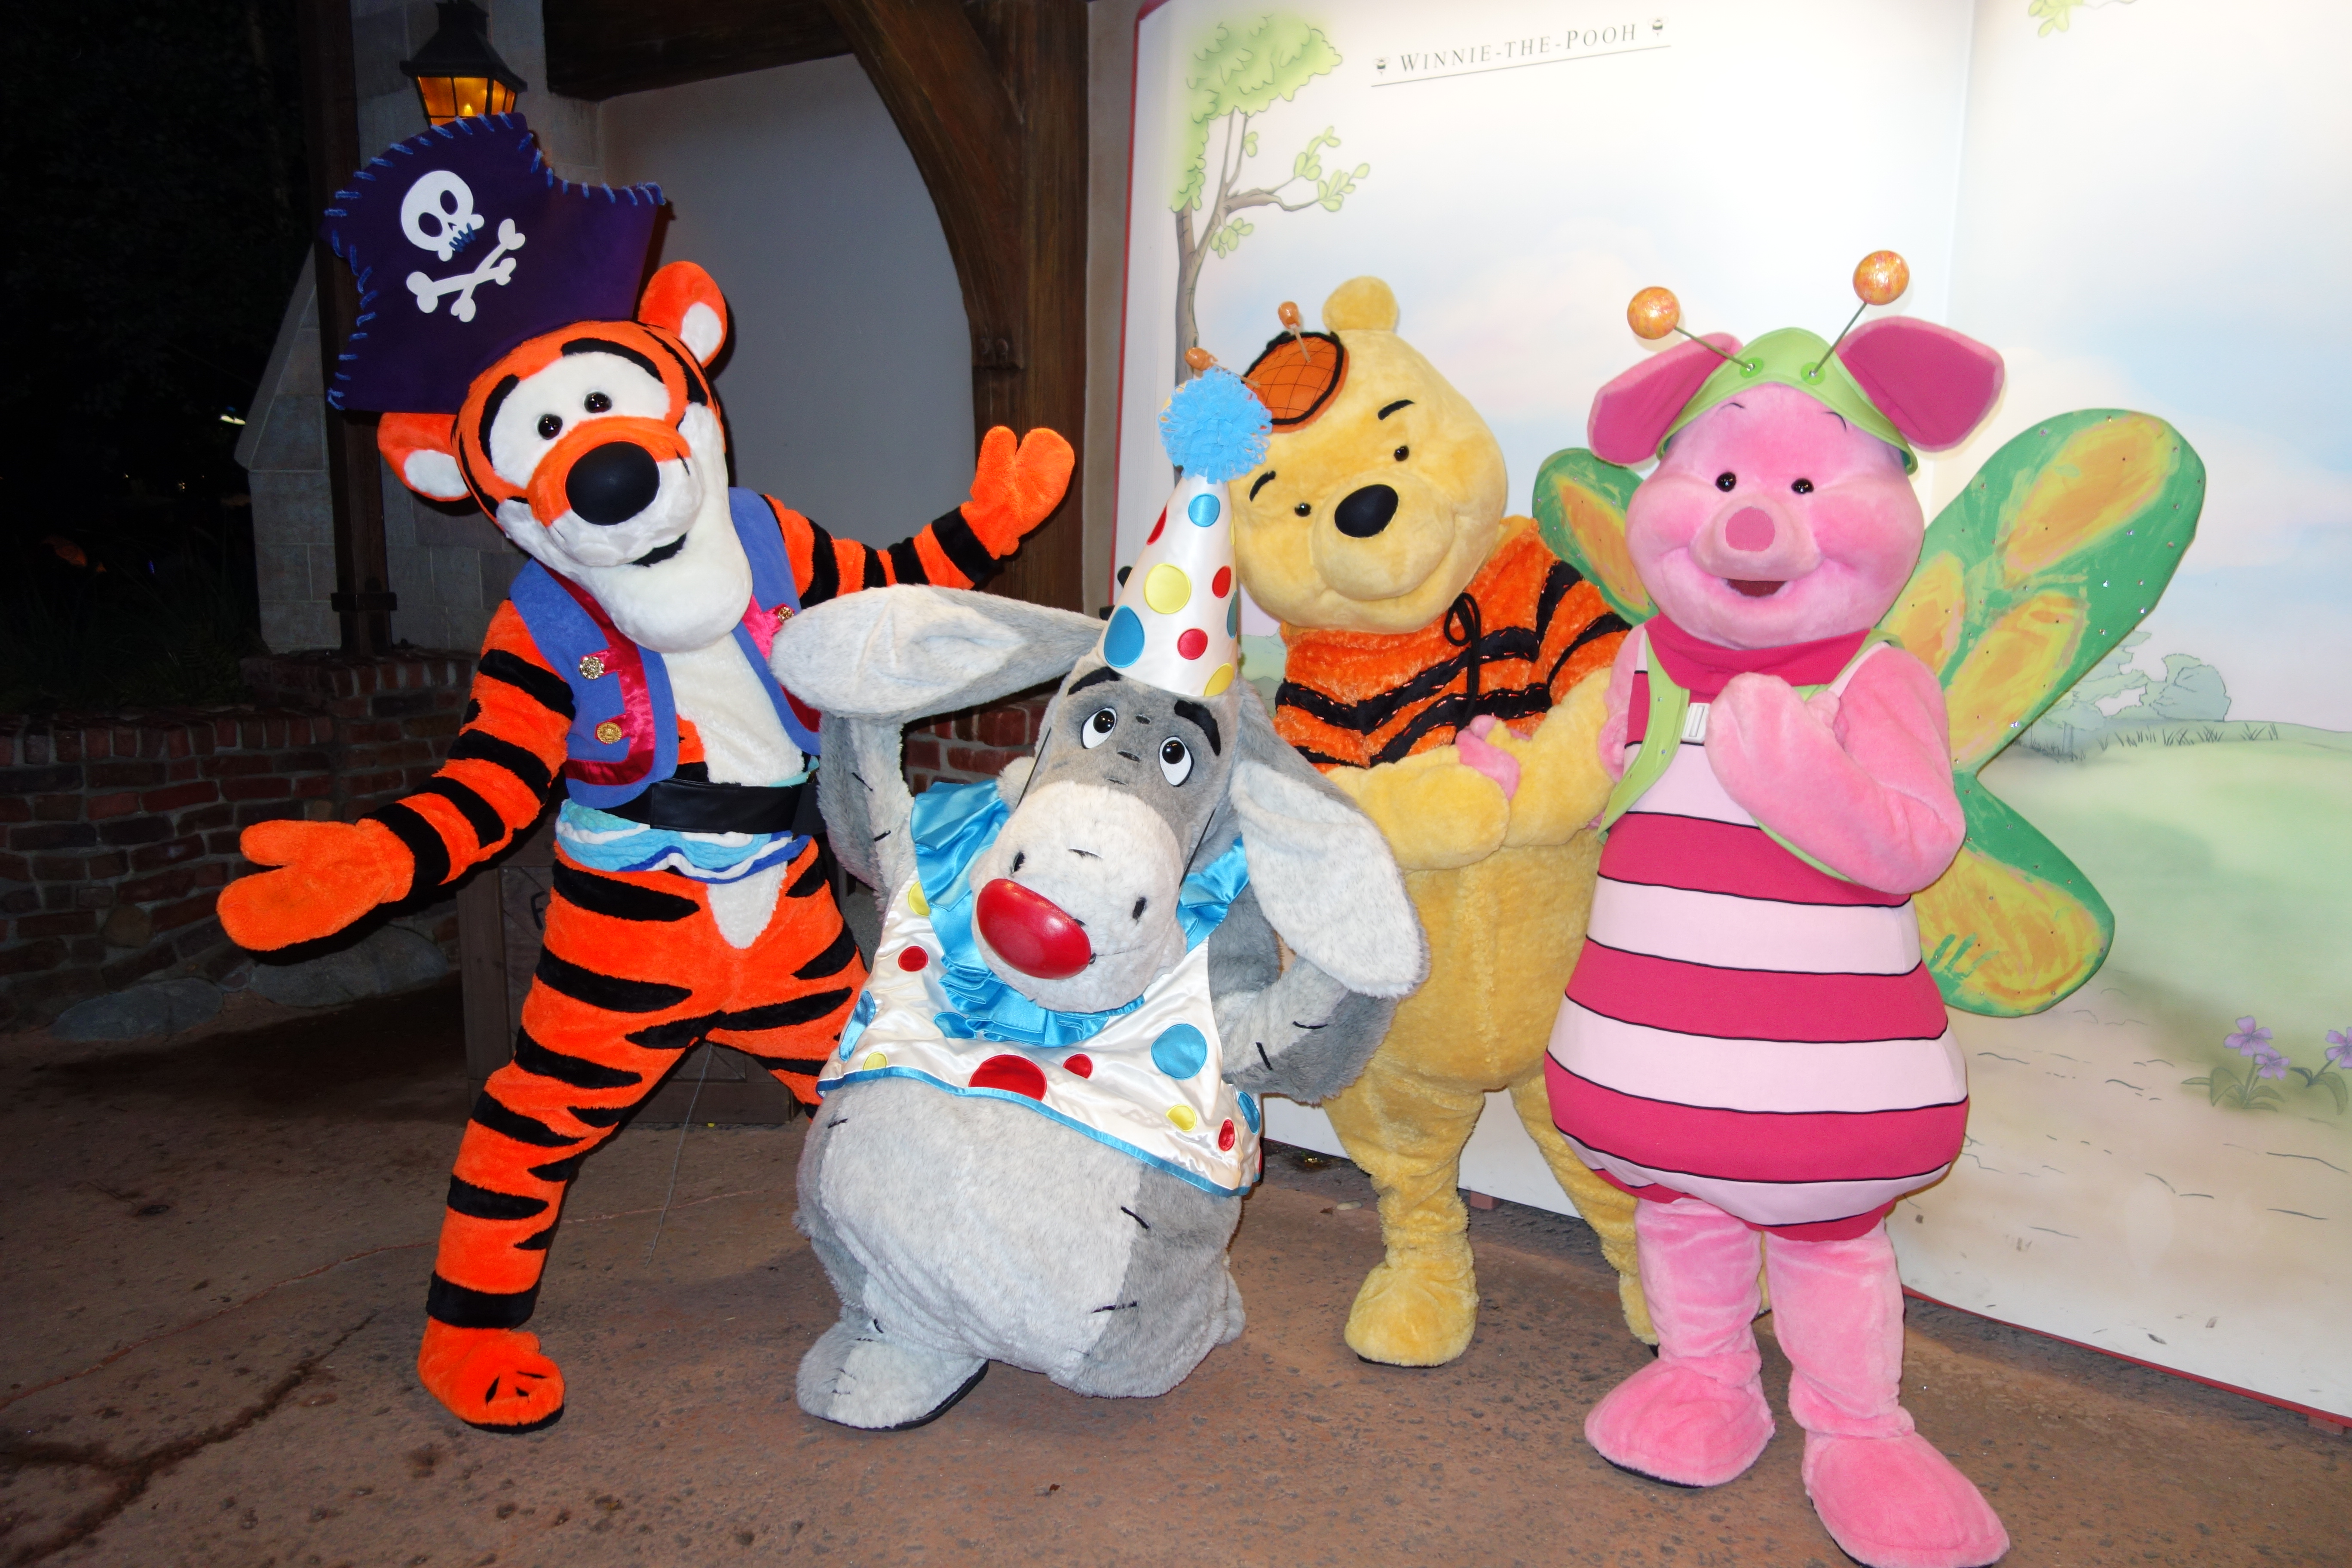 Winnie the Pooh | KennythePirate's Unofficial Guide to Disney World